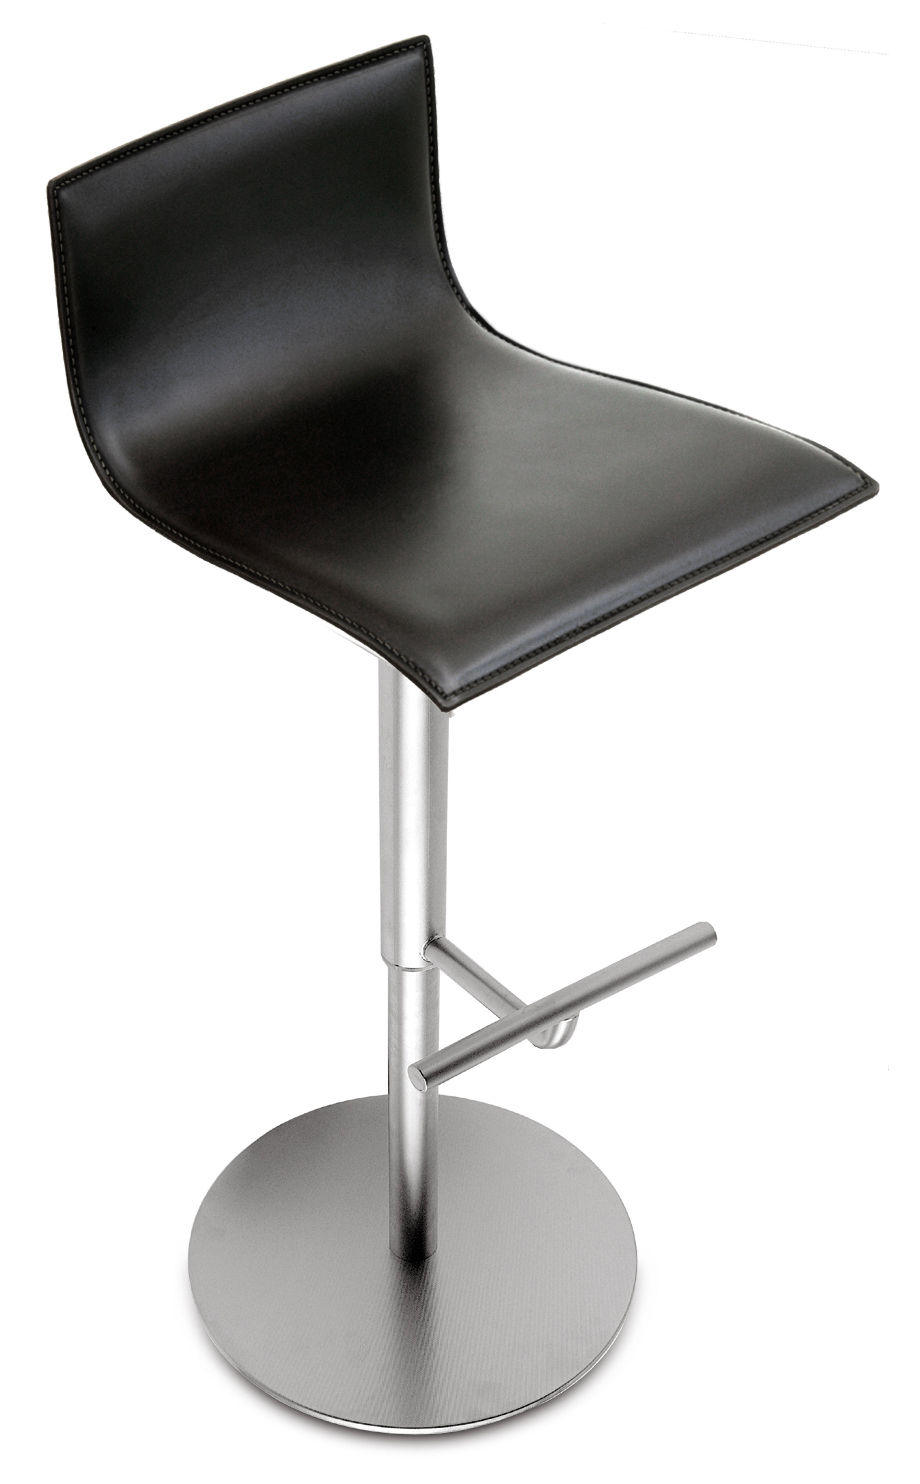 Furniture - Bar Stools - Thin Adjustable bar stool - Pivoting leather seat by Lapalma - Black leather - Leather, Stainless steel